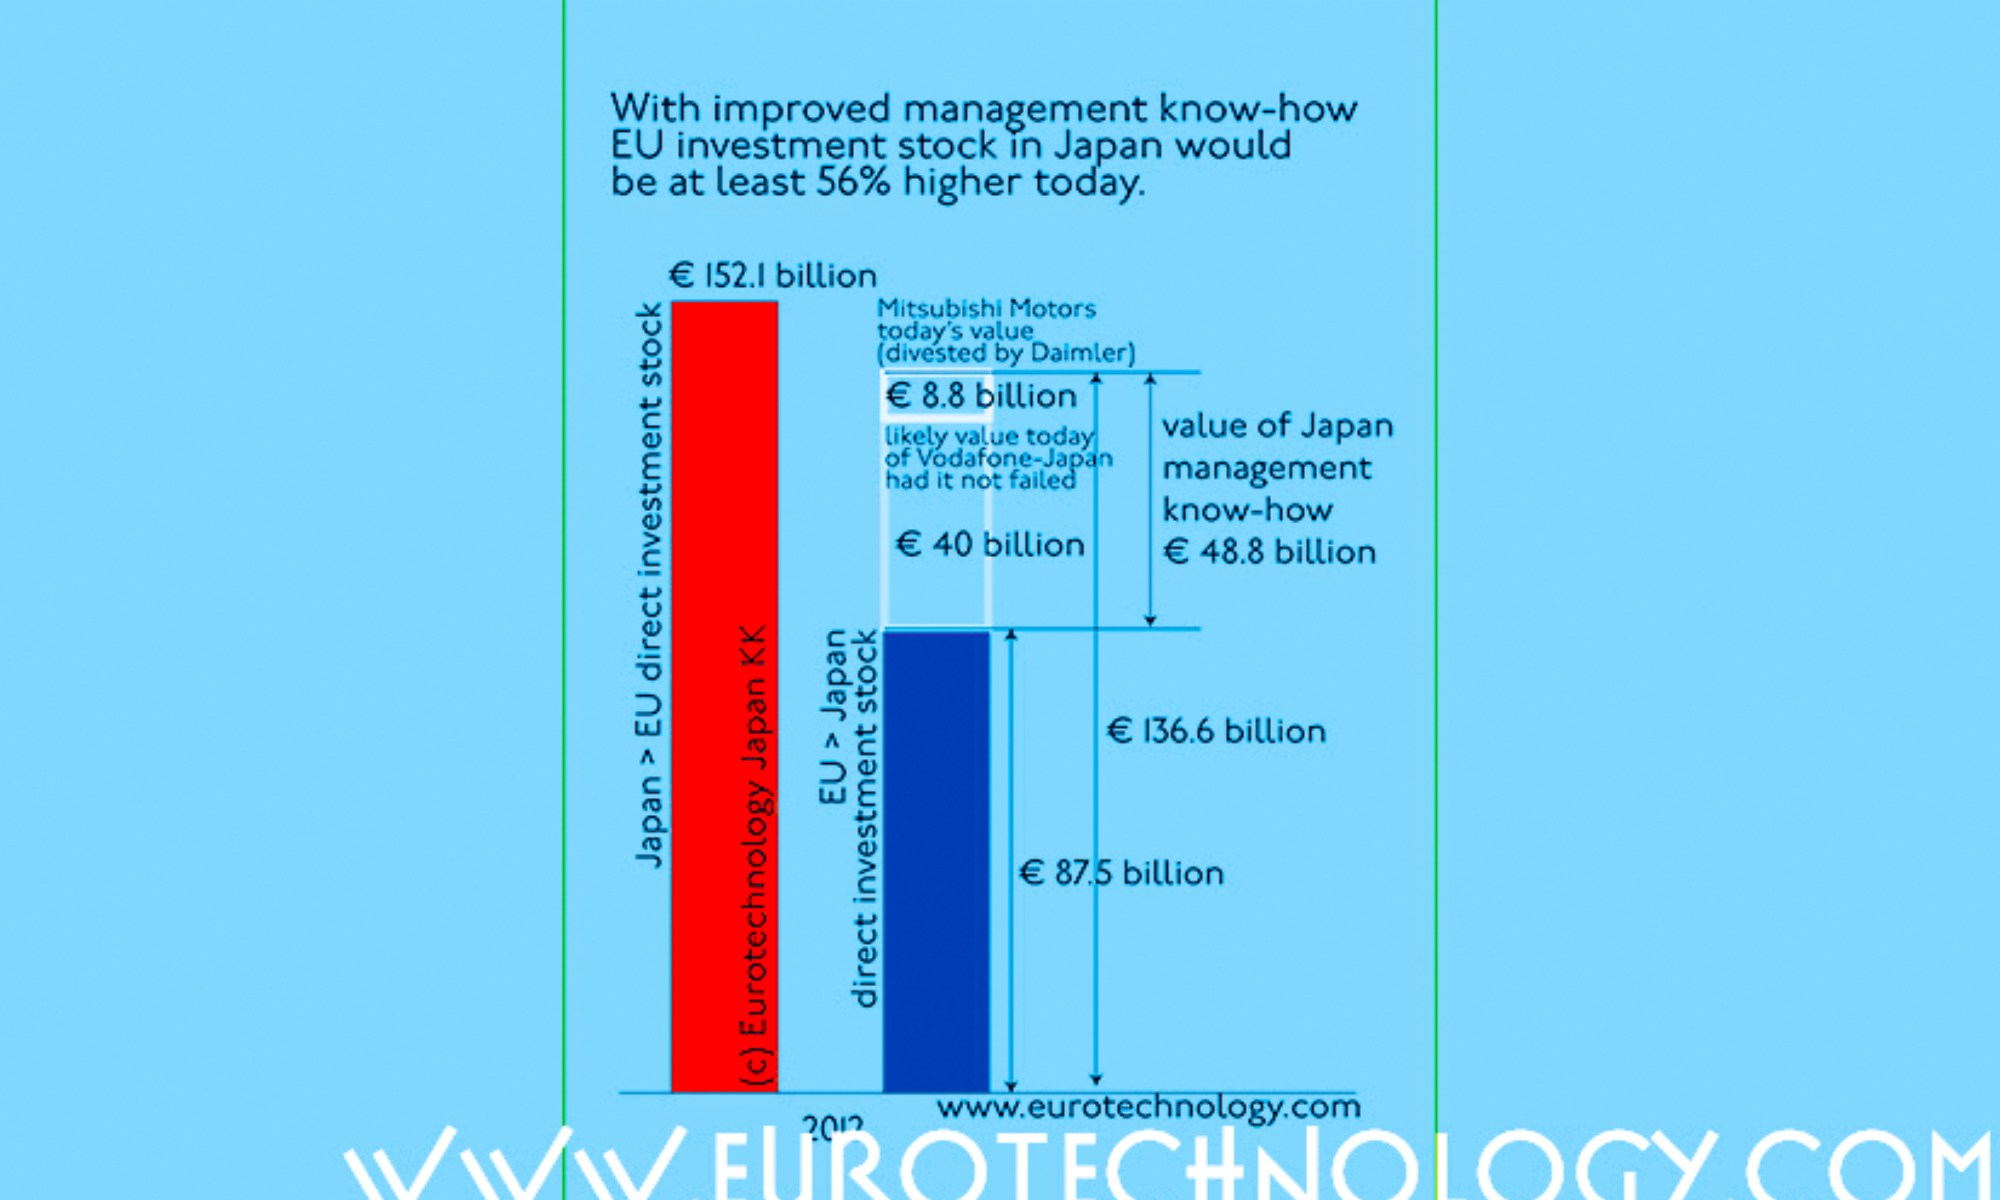 EU investment in Japan could be 50% higher had Vodafone succeeded in Japan